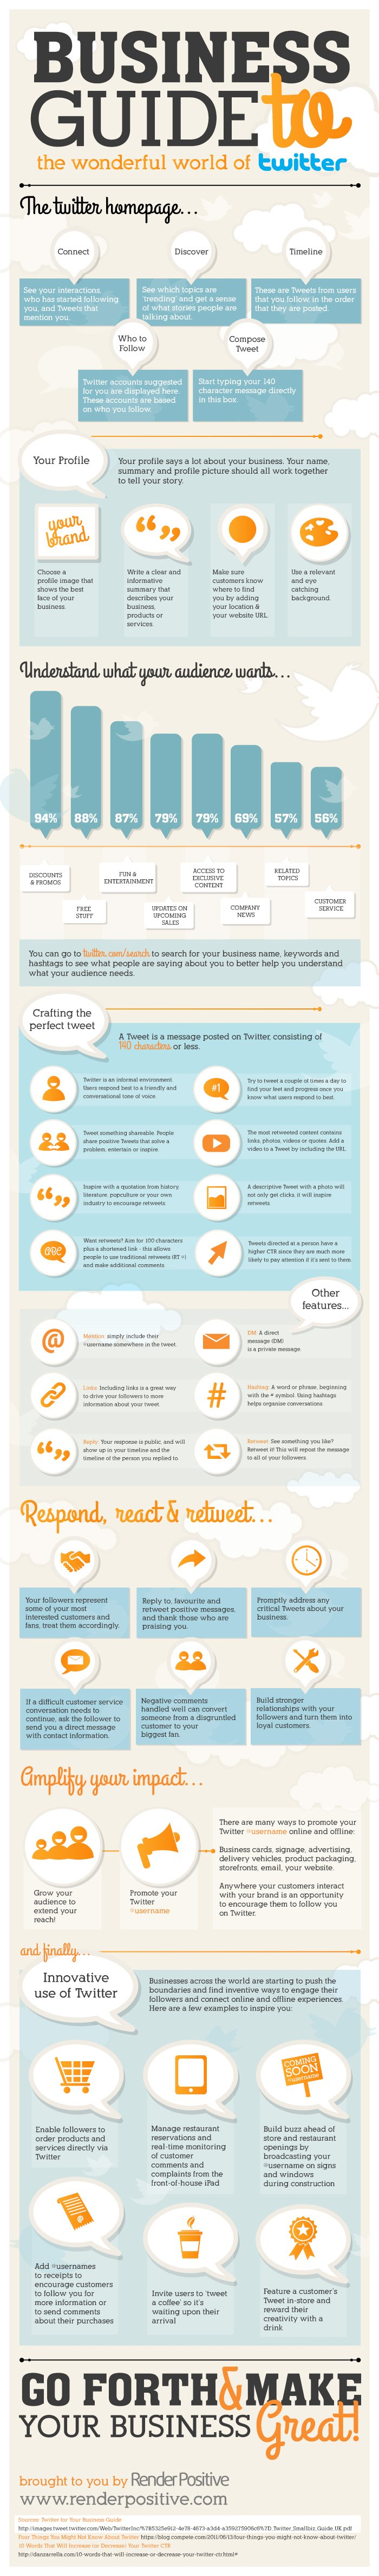 Business Guide to Twitter [Infographic]